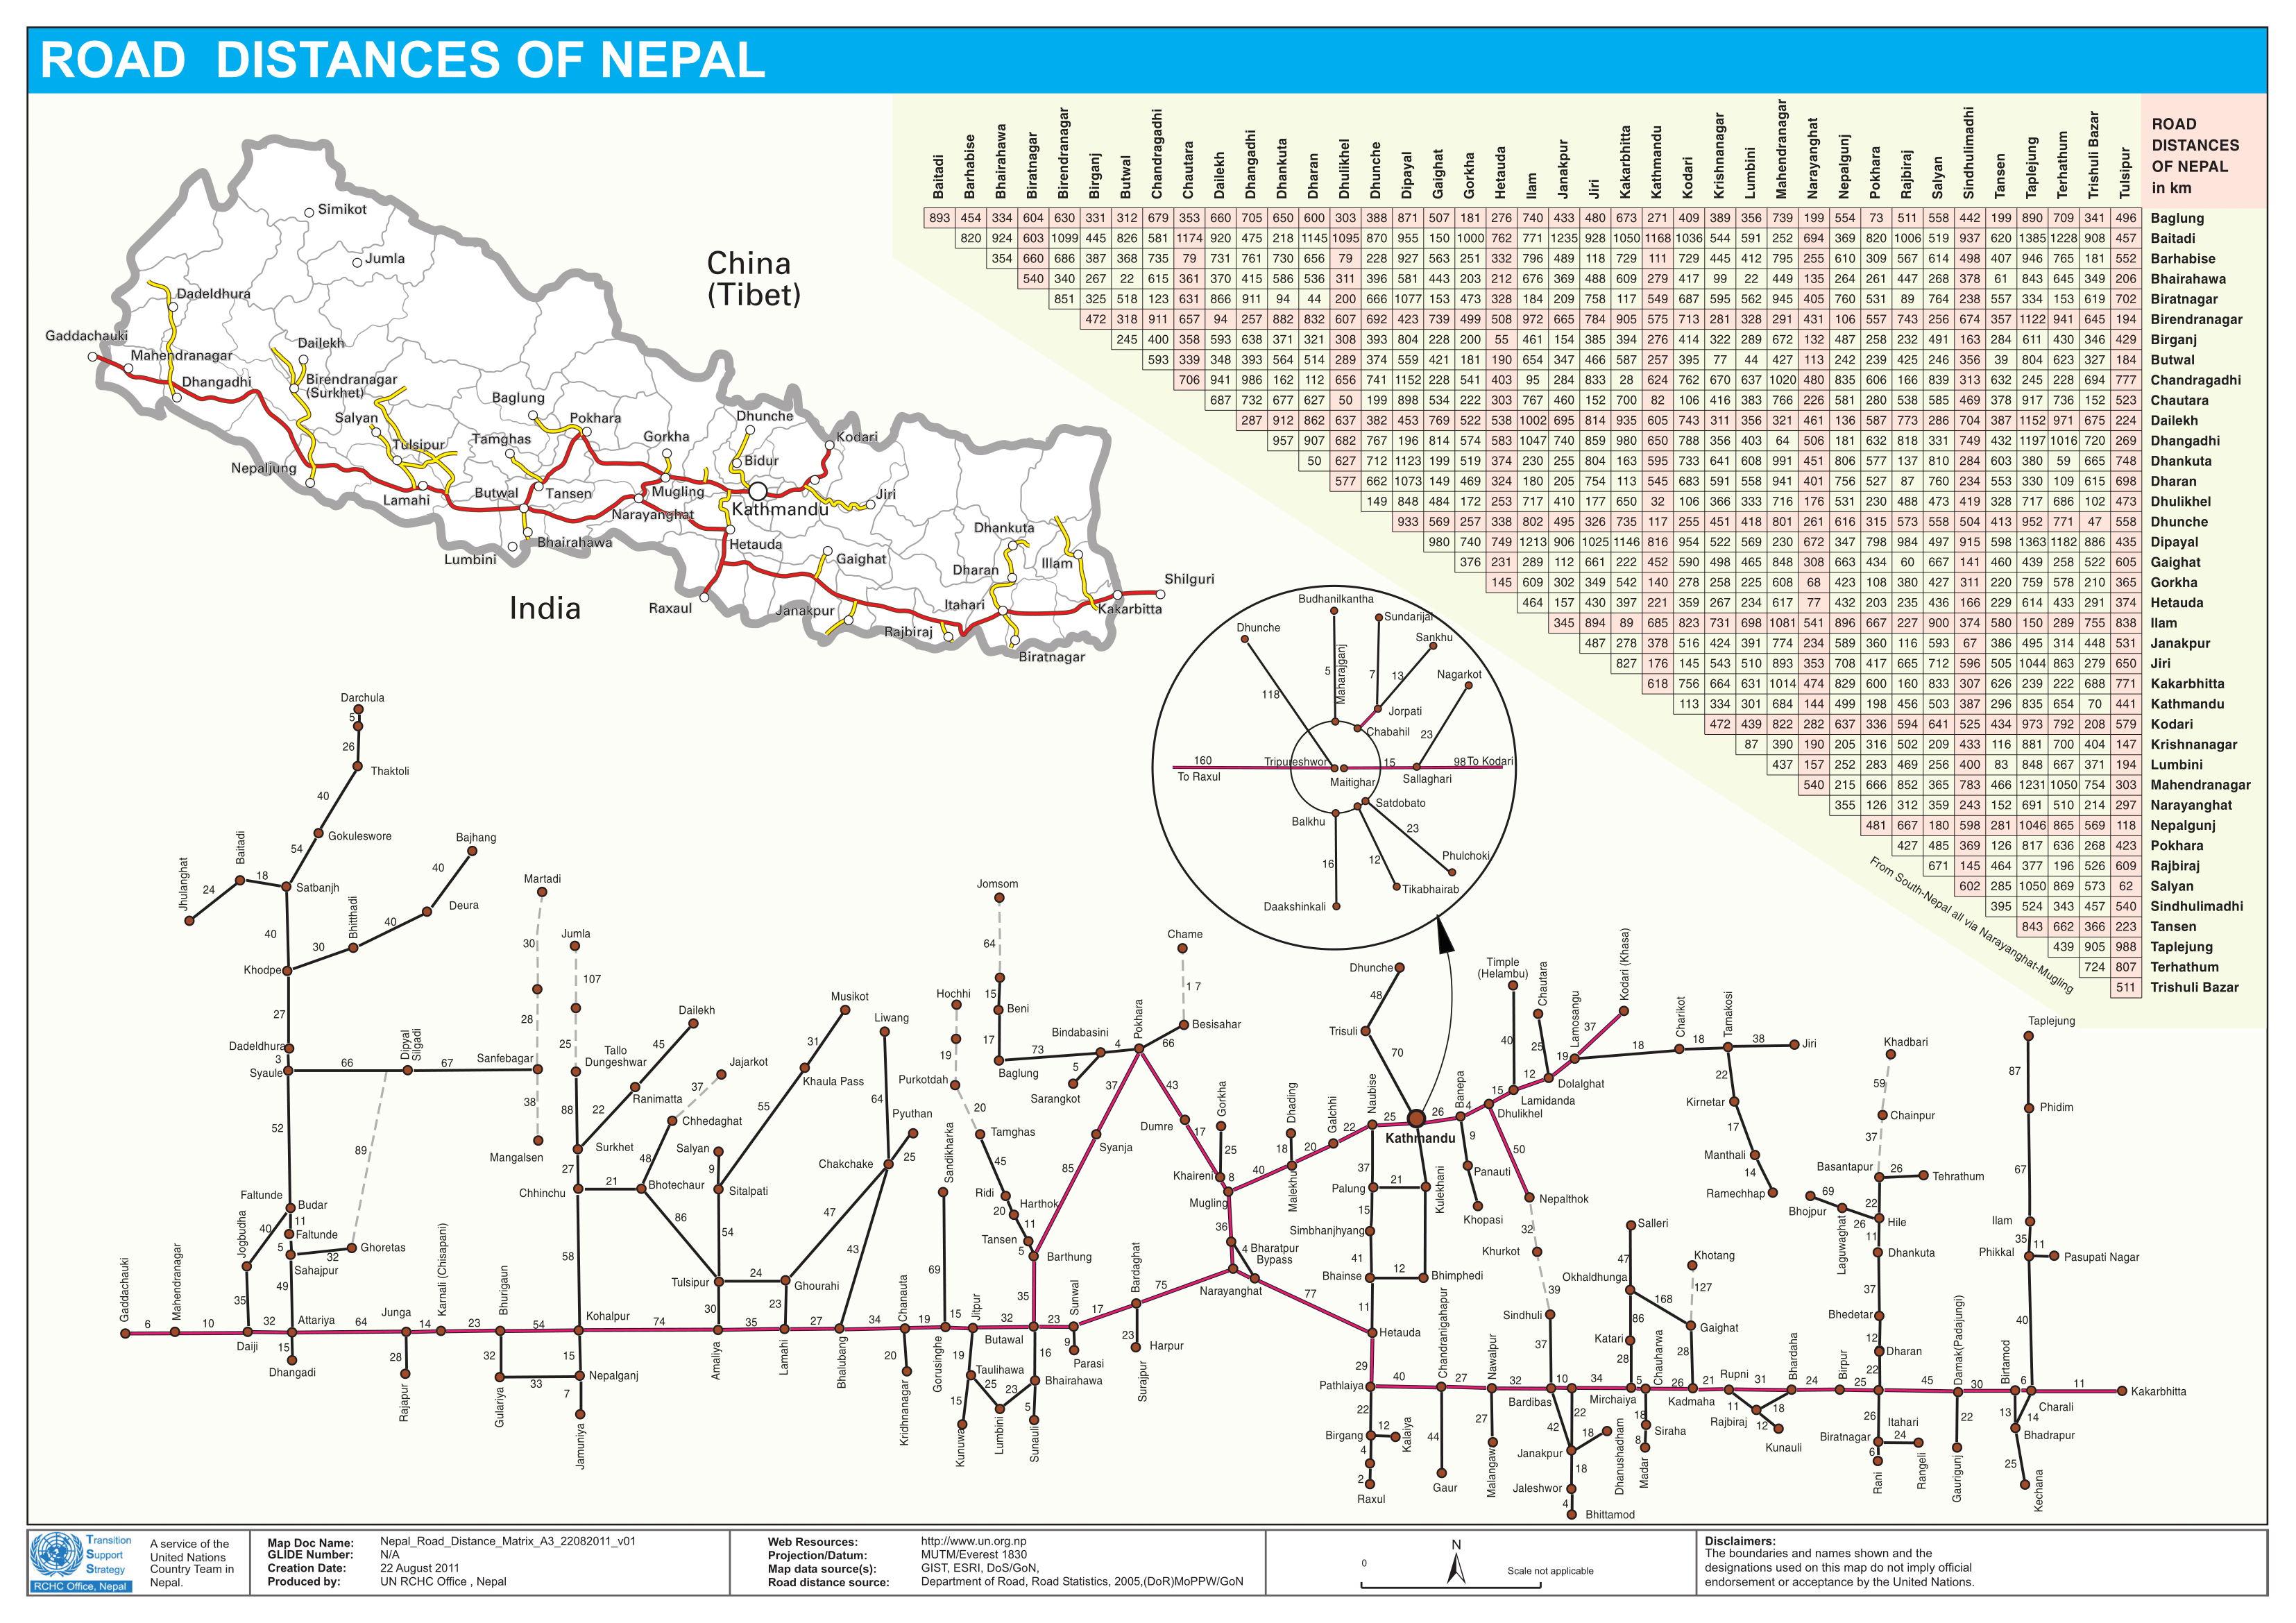 2.3 Nepal Road Network - Logistics Capacity essment - Digital ... on economic map, climate map, political map, travel map, need for driving directions map, resource map, blank map, paper map, grid map, trail map, dot map, physical map, world map, cartoon map, city map, treasure map, thematic map, us radar map, state map, park map,